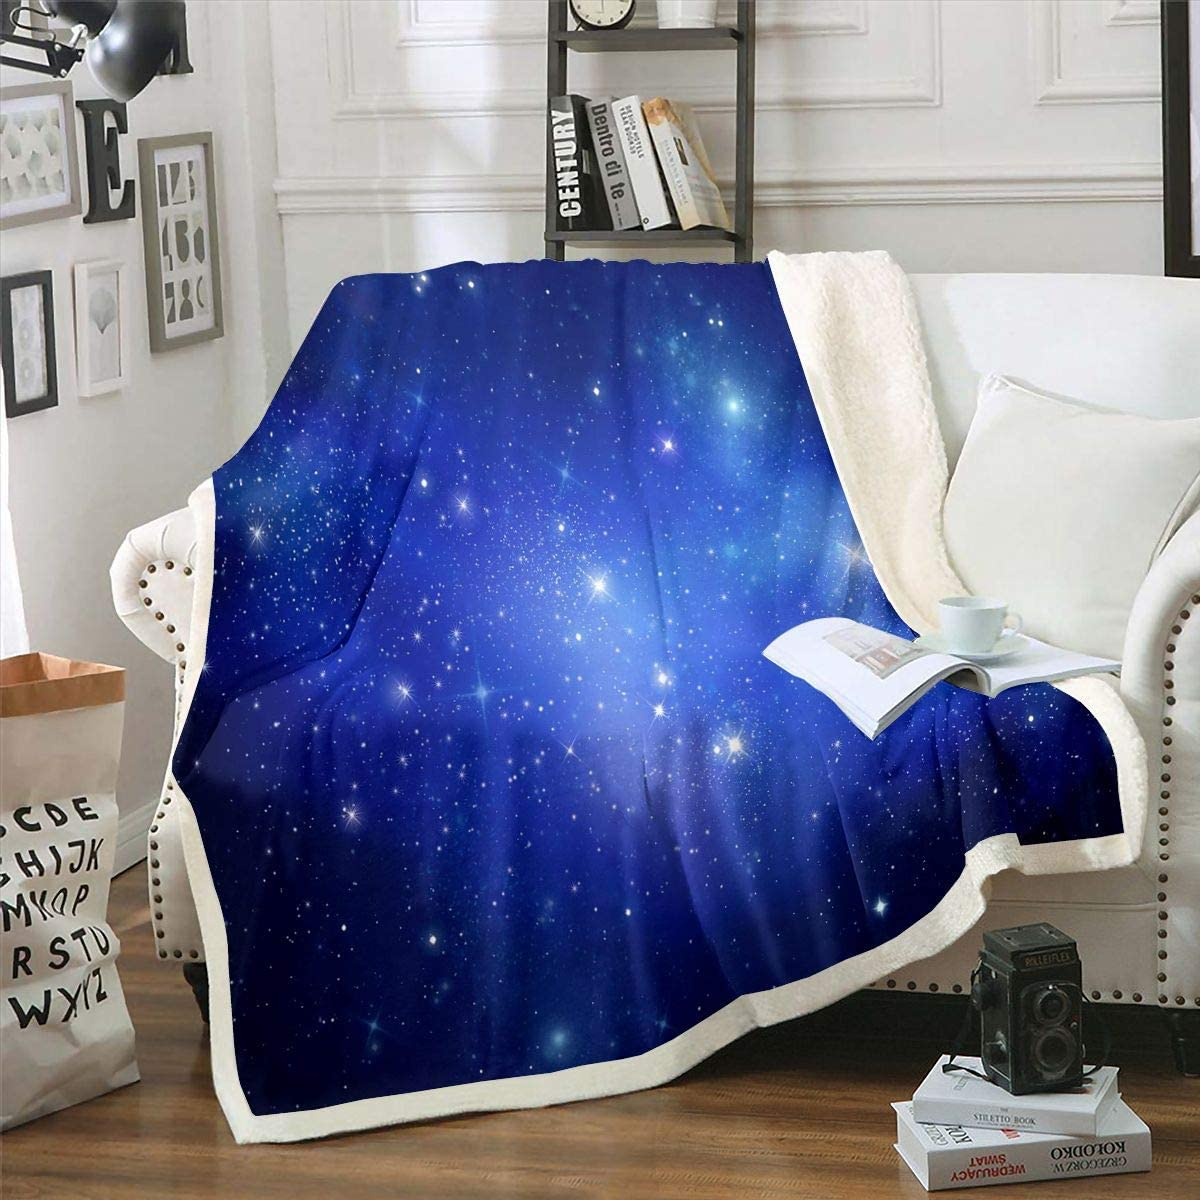 Galaxy Max 43% OFF Plush Blanket Outer Space Kids Sherpa Girls Indefinitely Boys